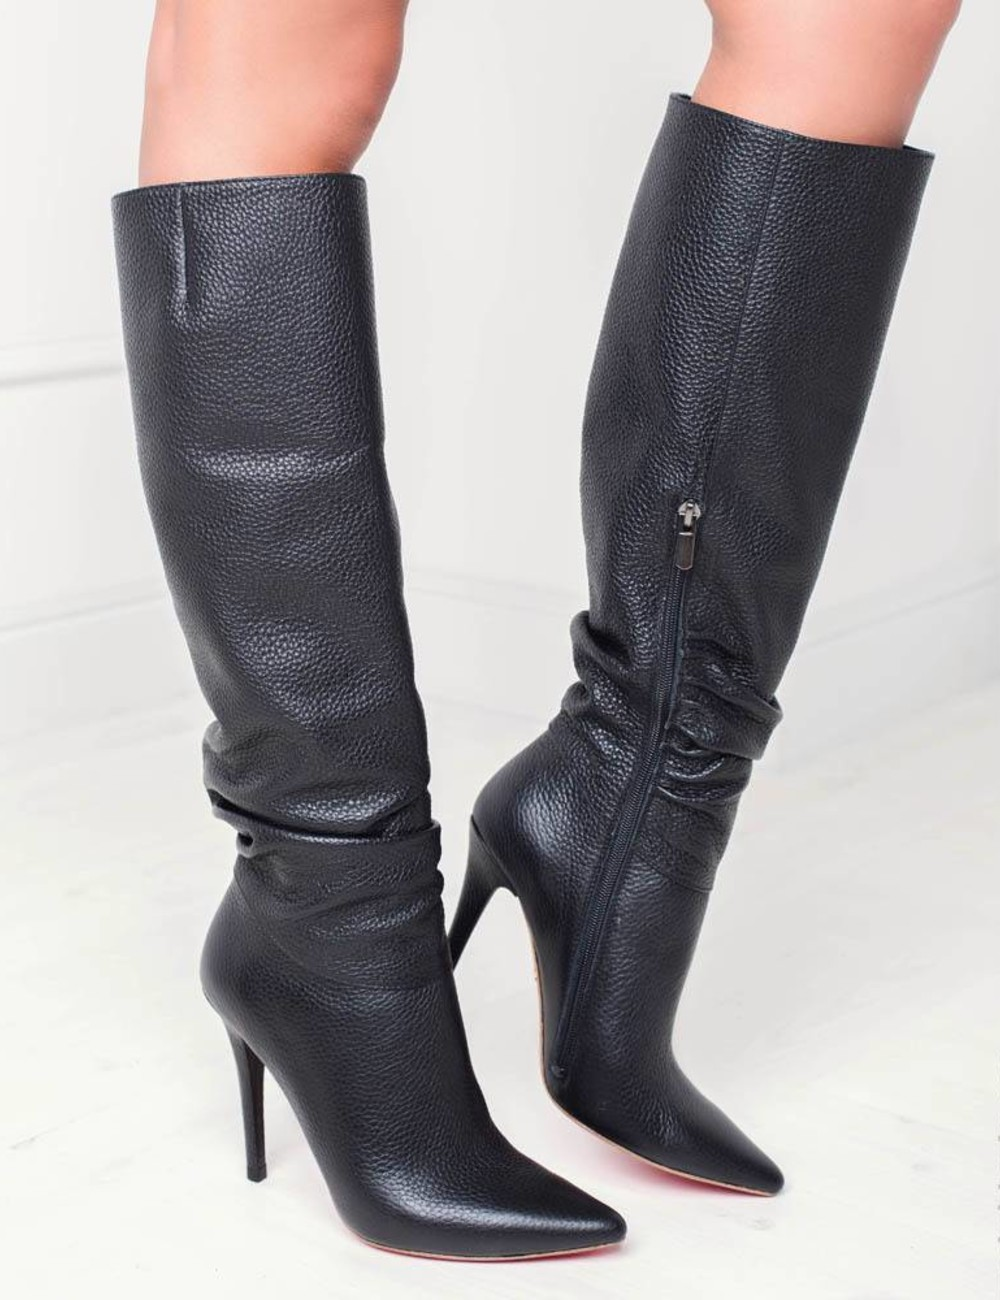 Leather black high boots by Yarose Shulzhenko Check our